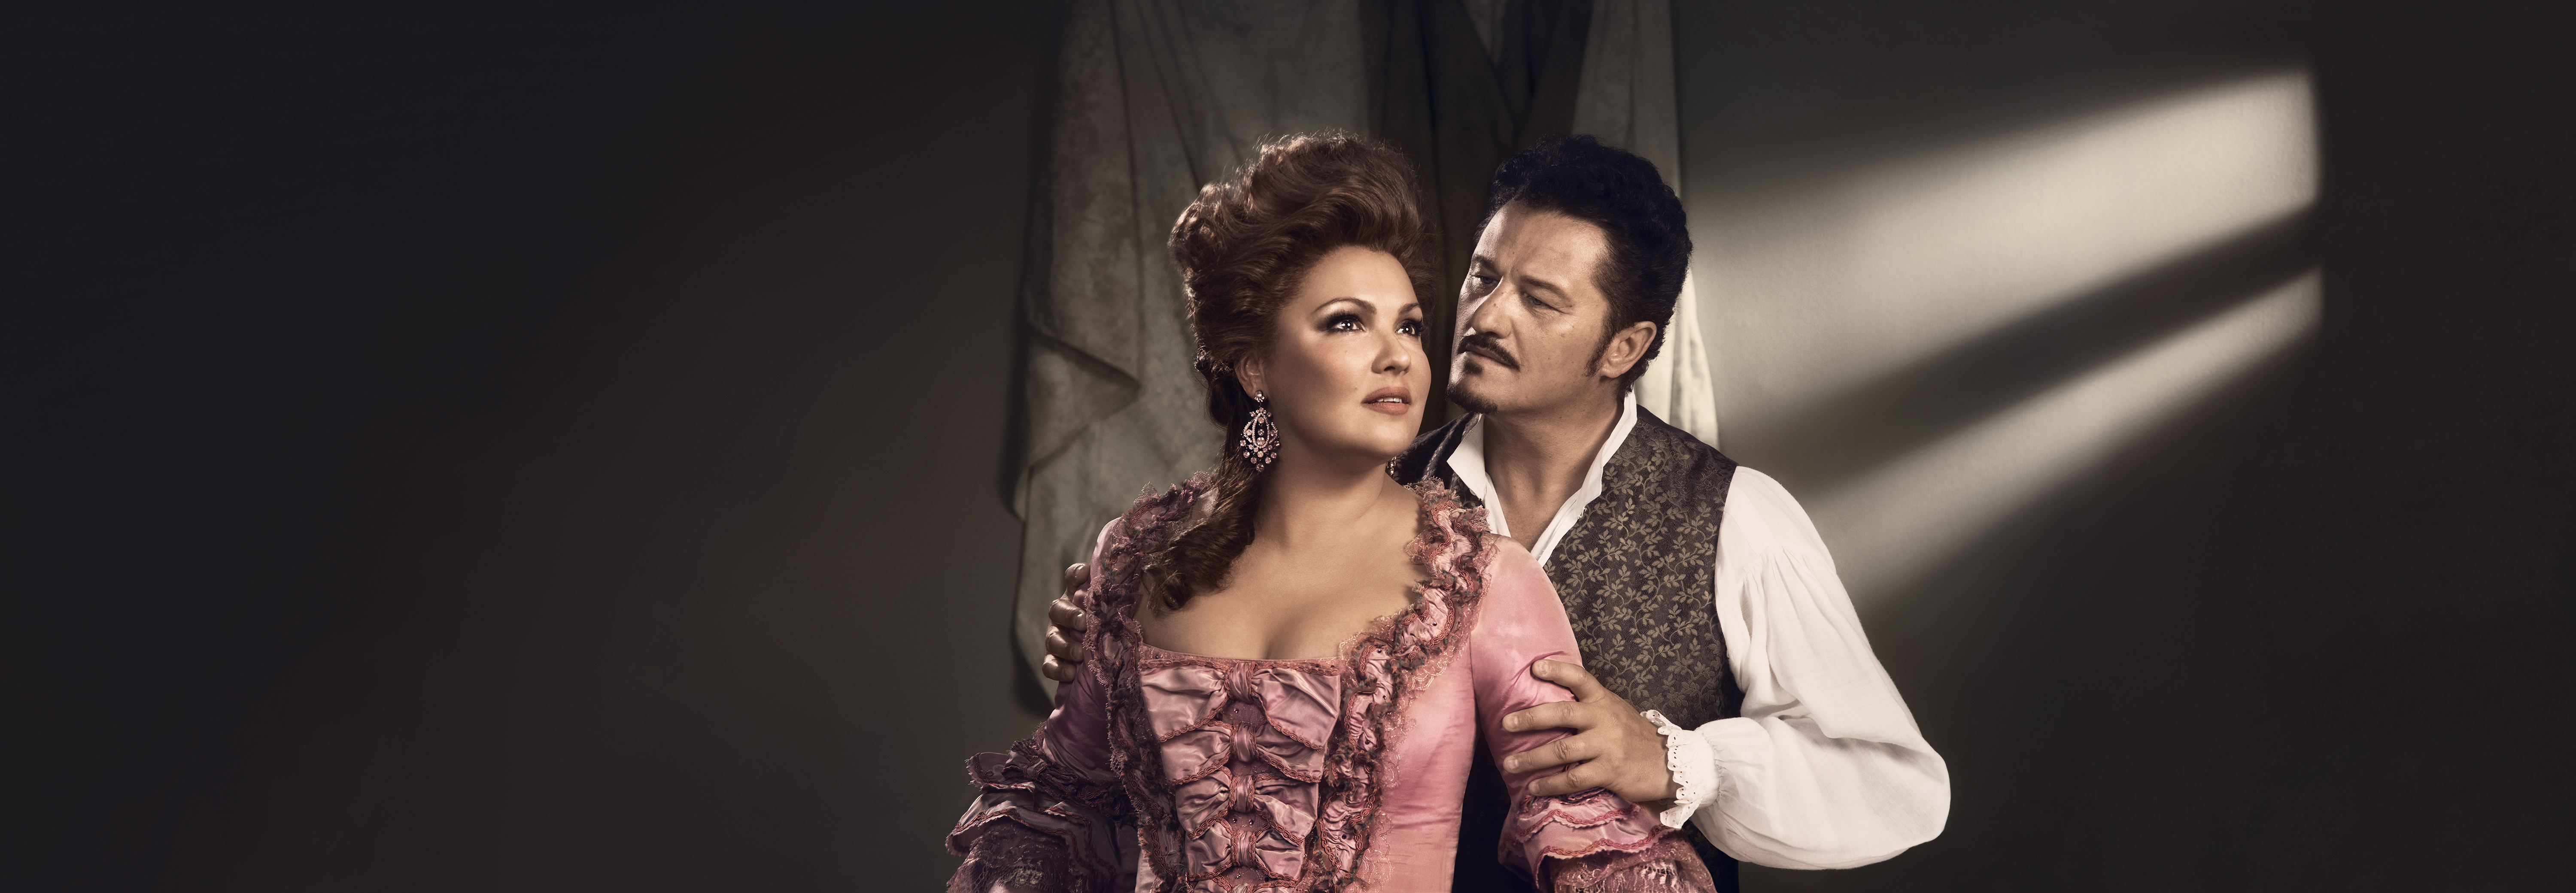 "Anna Netrebko and Piotr Beczała in ""Adriana Lecouvreur."" (Credit: Vincent Peters)"